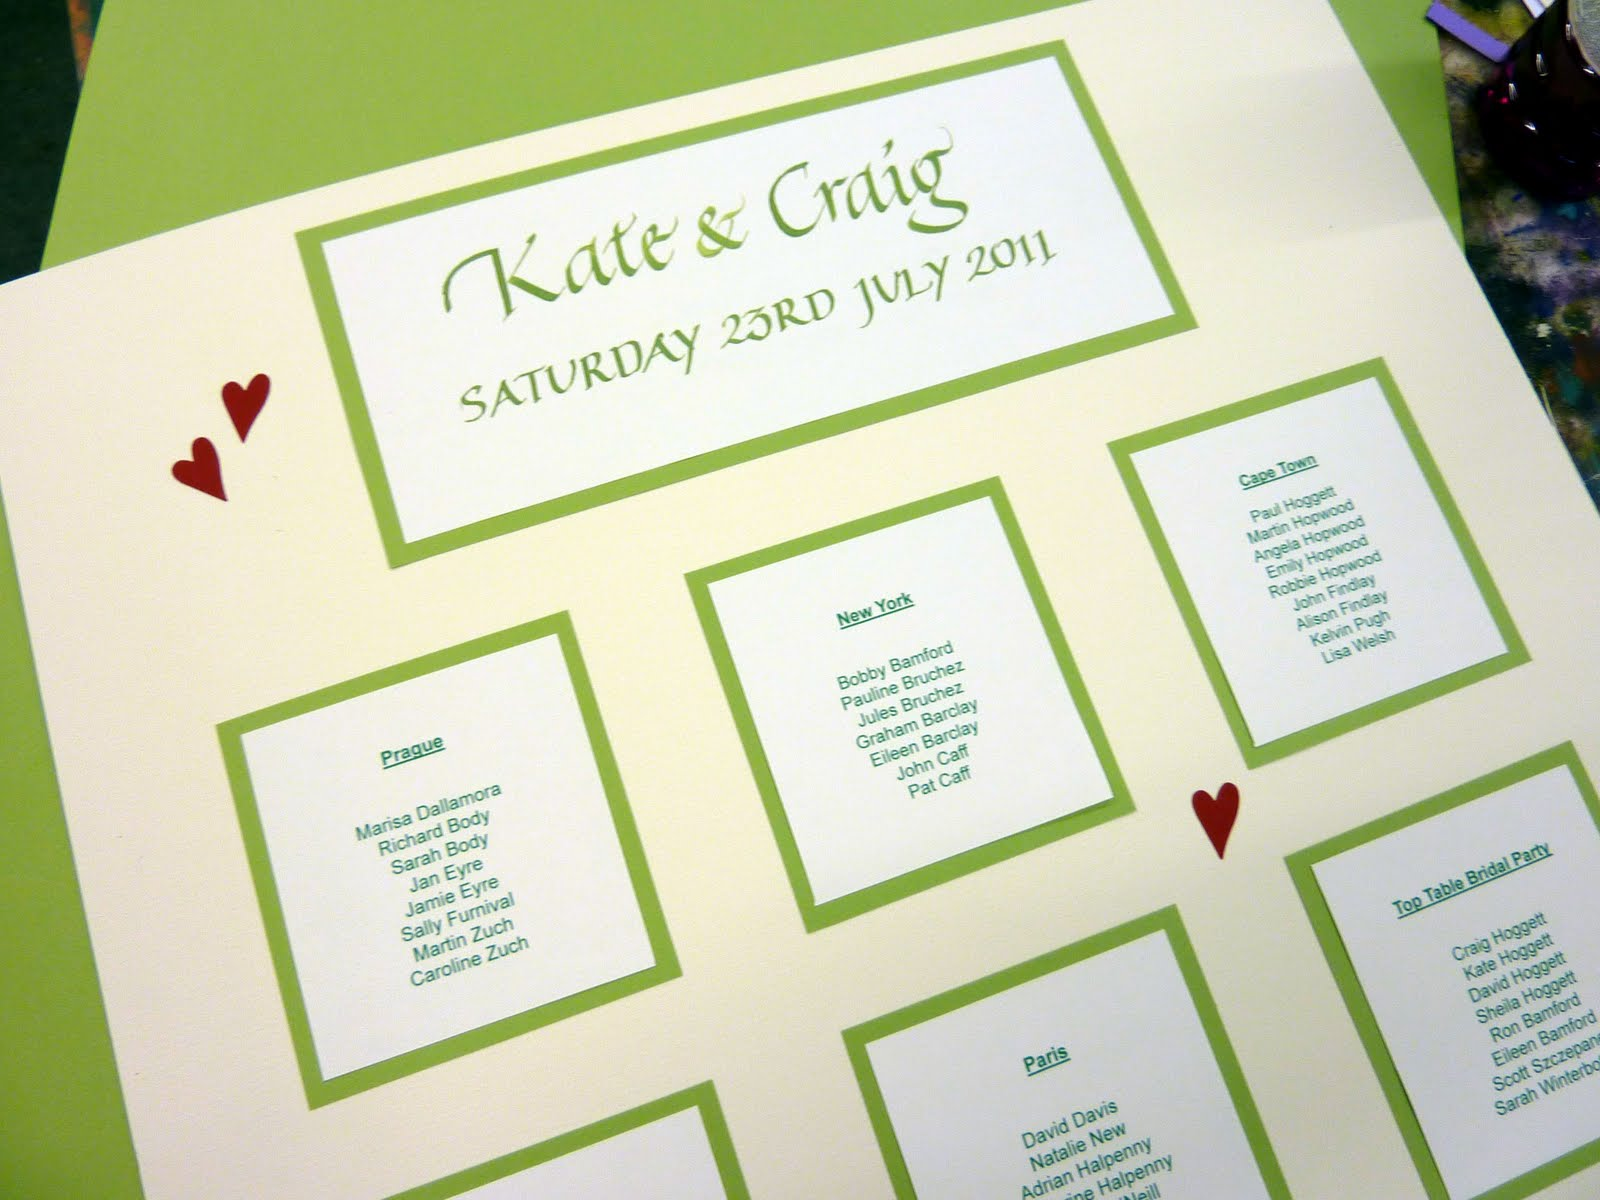 Wedding seating chart template excel free picture ideas references wedding seating chart template excel free wedding seating chart template excel free wedding seating chart excel alramifo Gallery